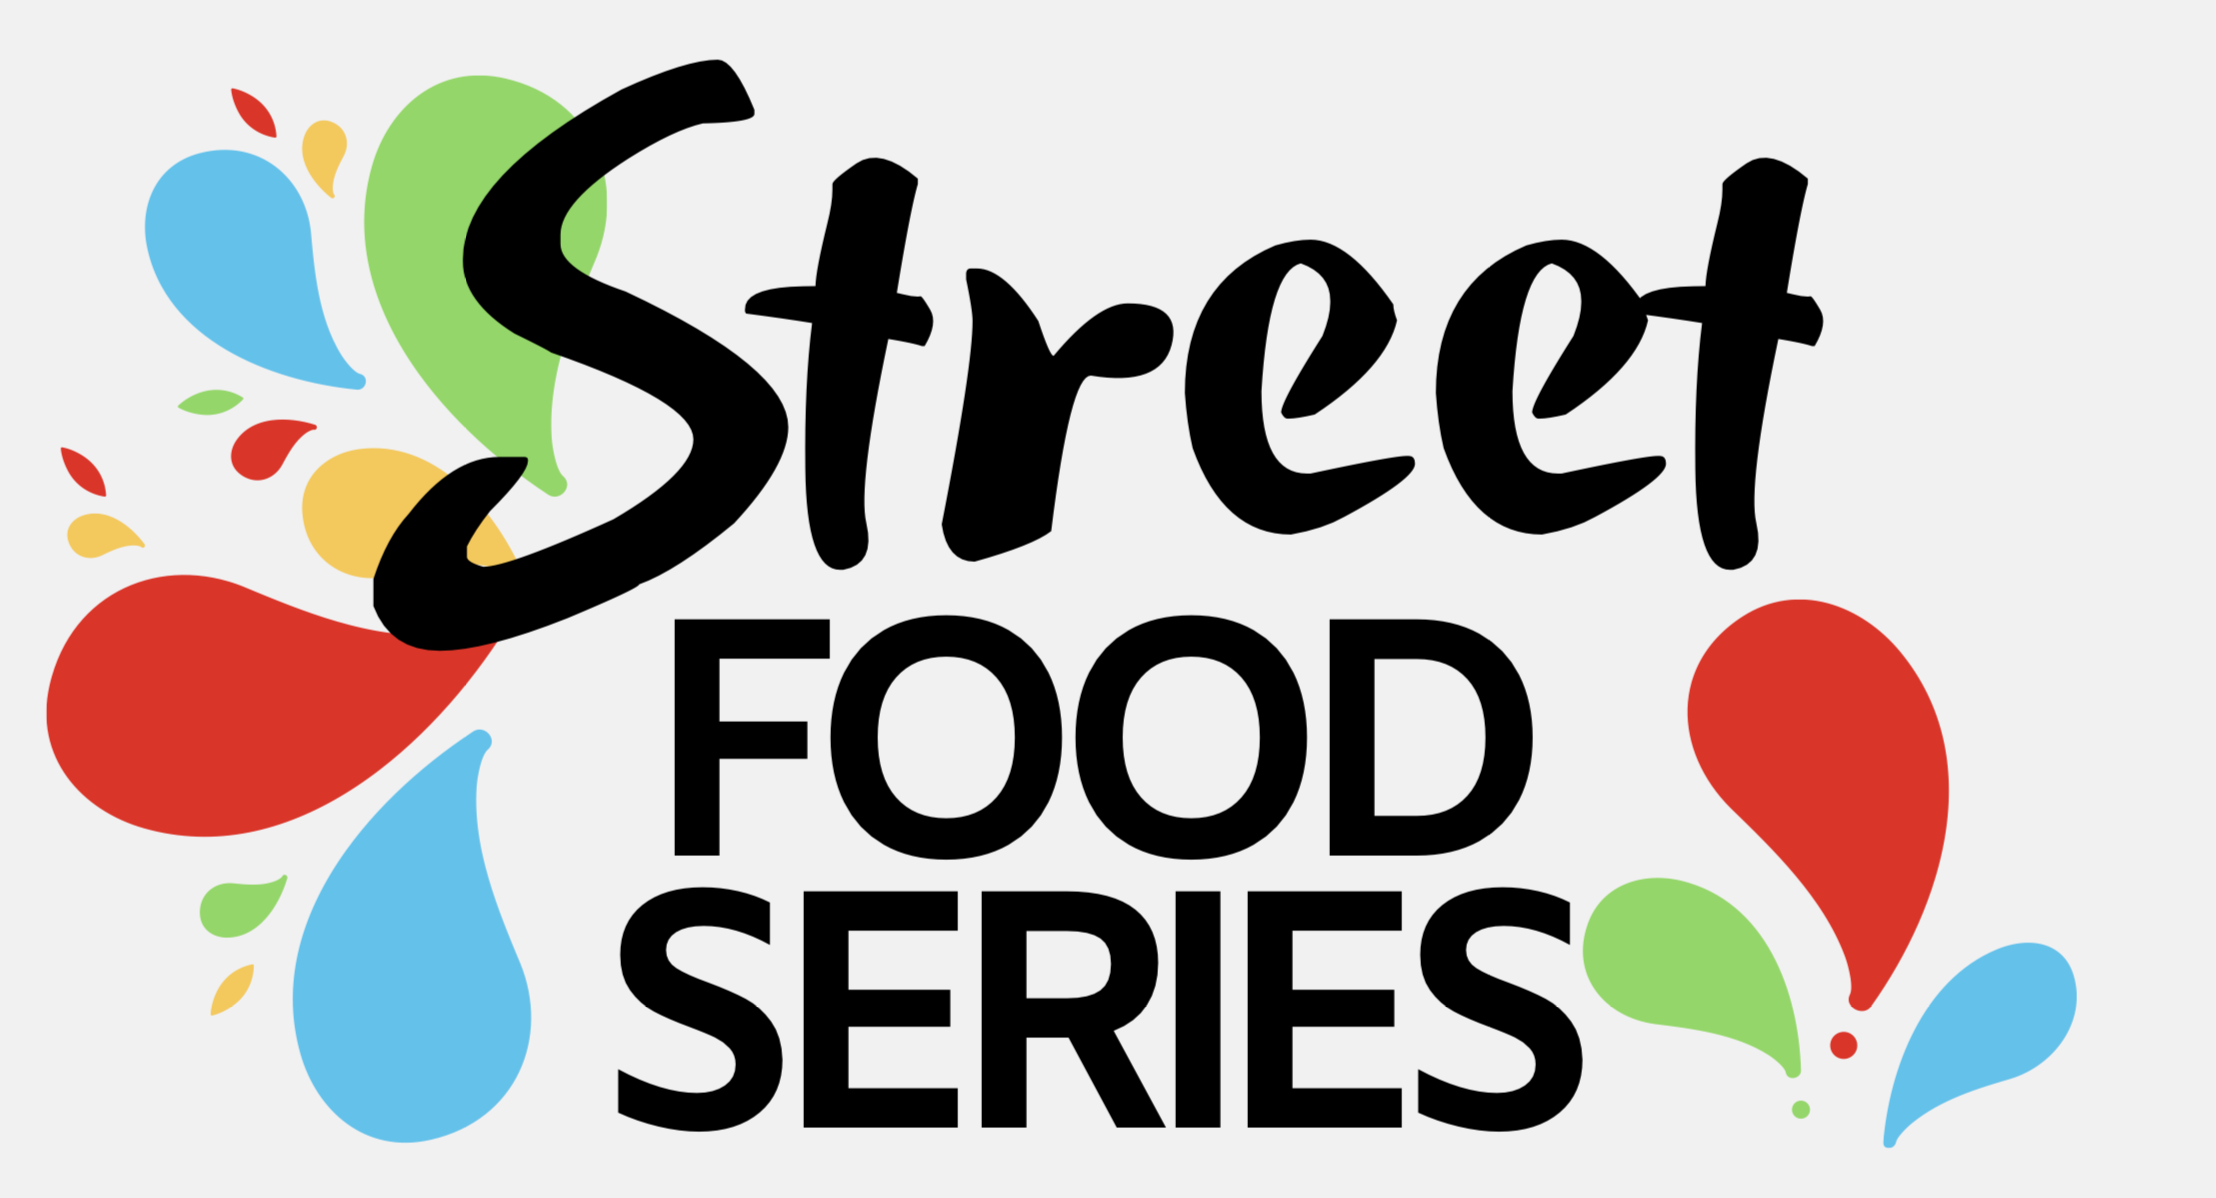 International Street Food series